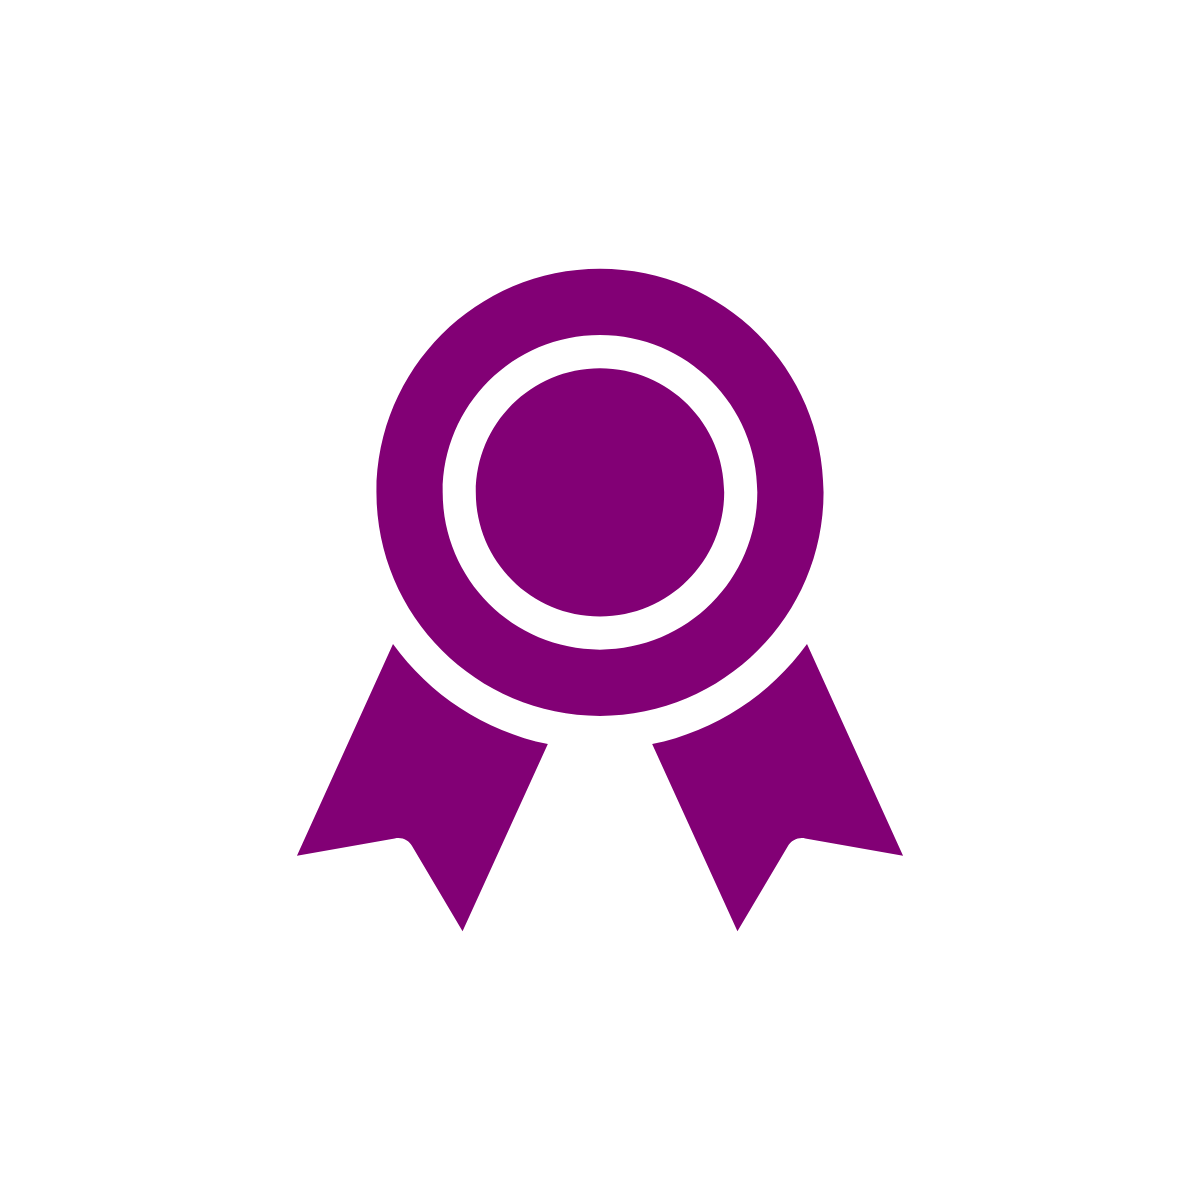 Icon of ribbon